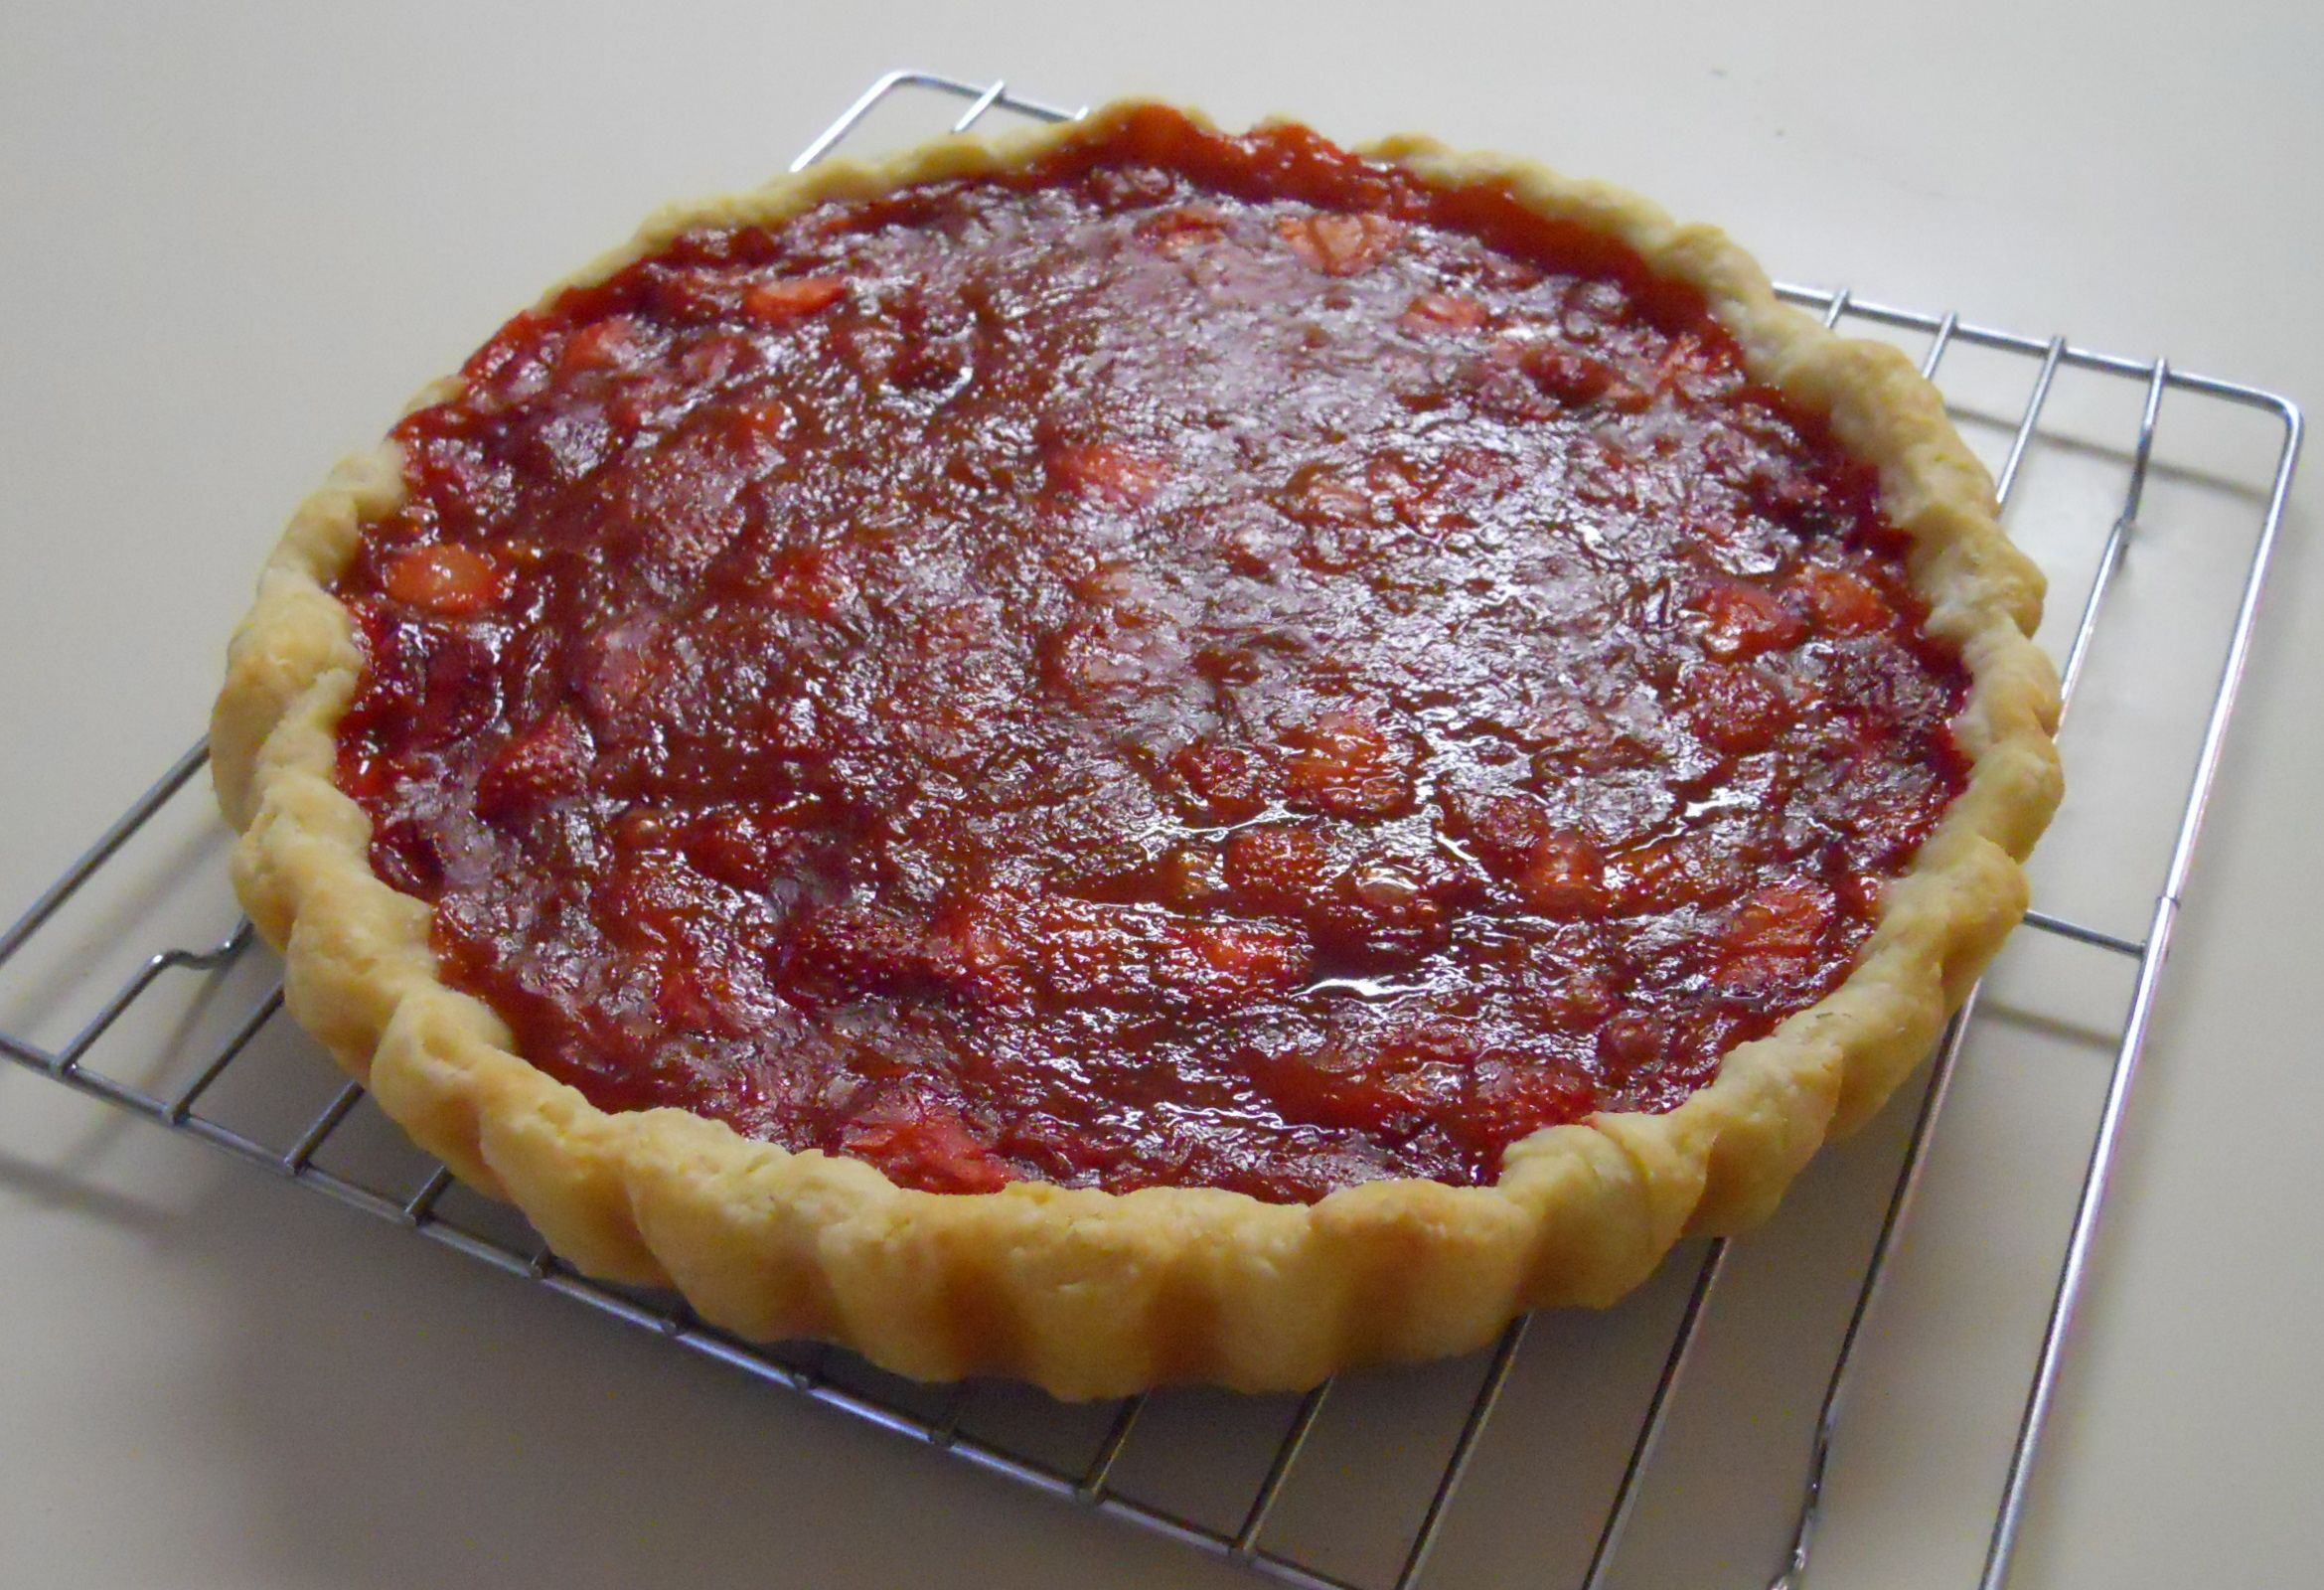 Homegrown strawberries and rhubarb turned into a delicious tart.